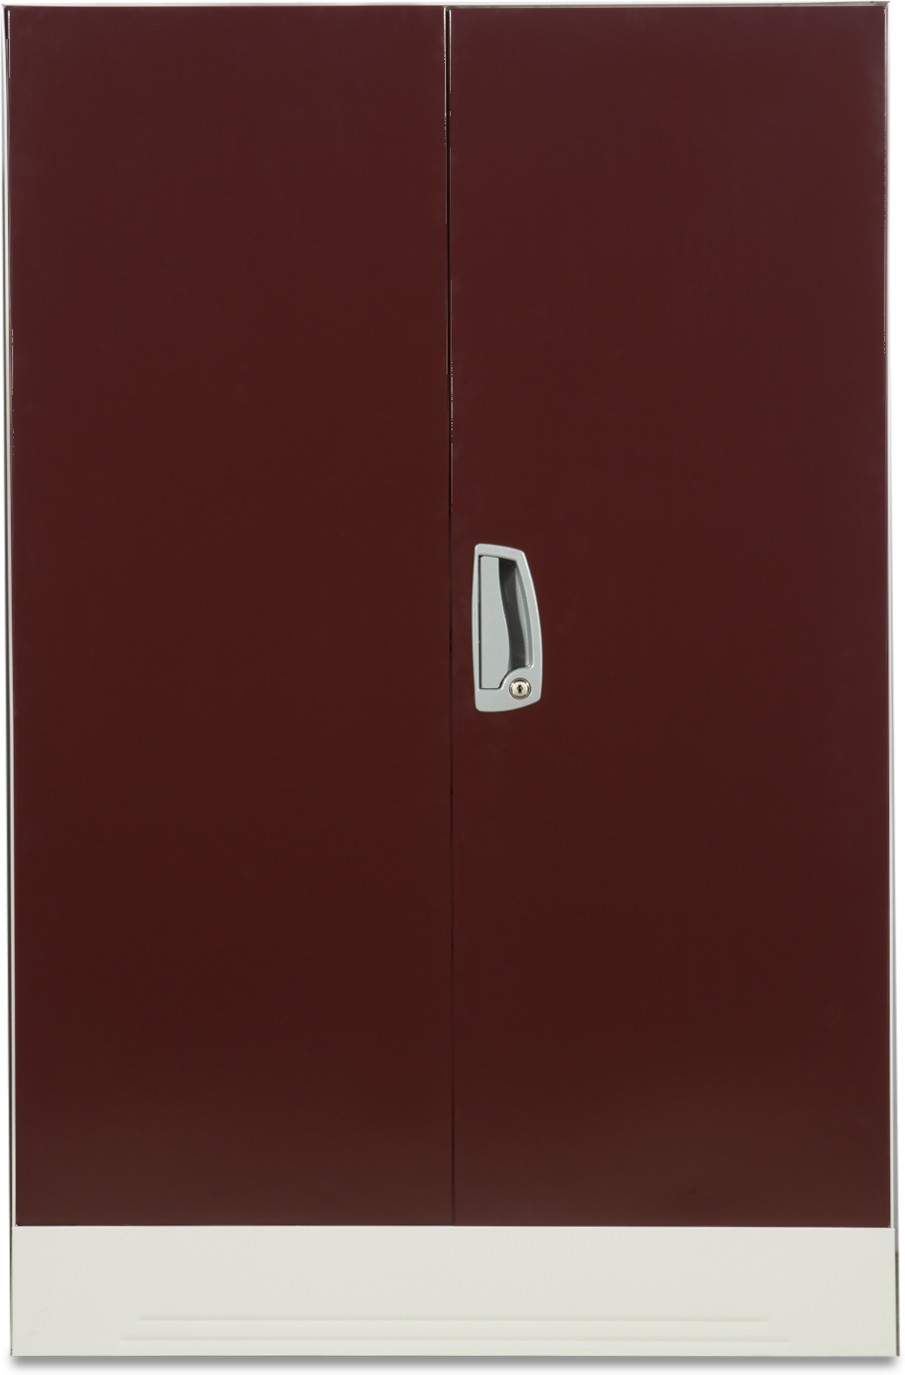 Godrej Interio Slimline Minor 2 S Metal Almirah(Finish Color - Russet)